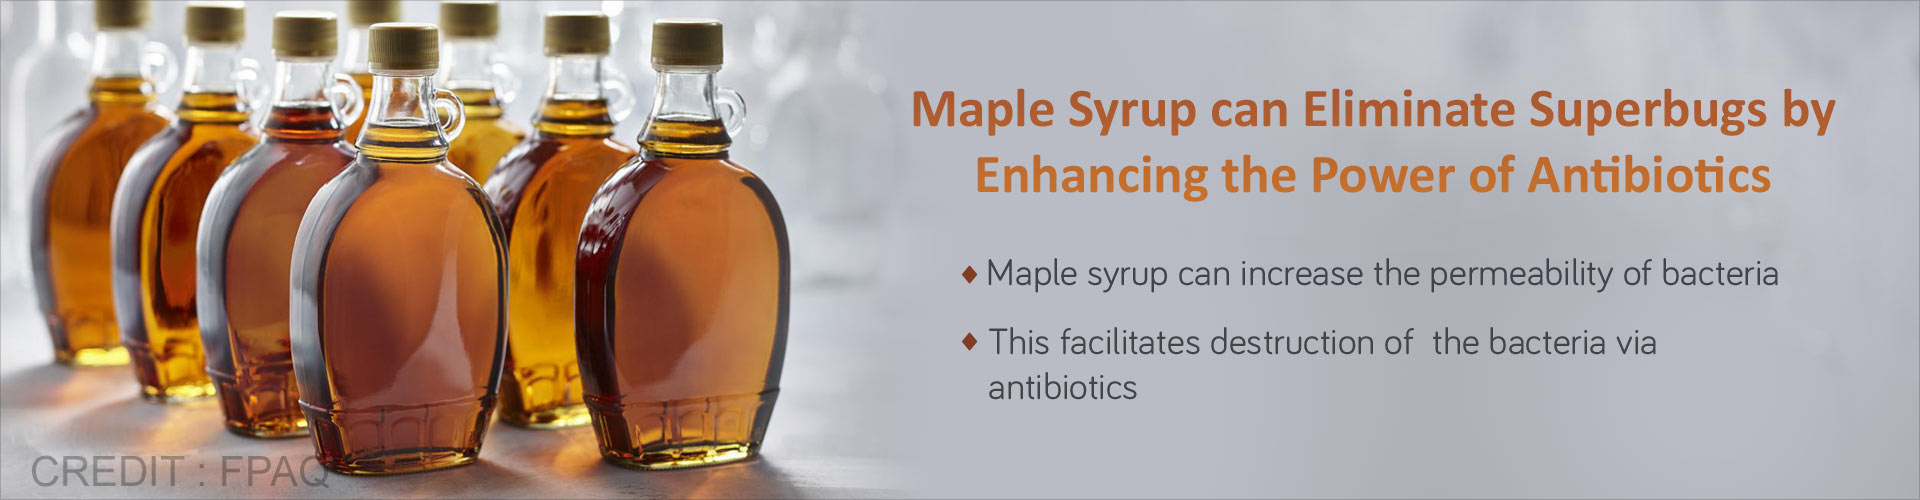 Maple Syrup can Eliminate Superbugs by Enhancing the Power of Antibiotics - Maple syrup can increase the permeability of bacteria - The facilities destruction of the bacteria via antibiotics